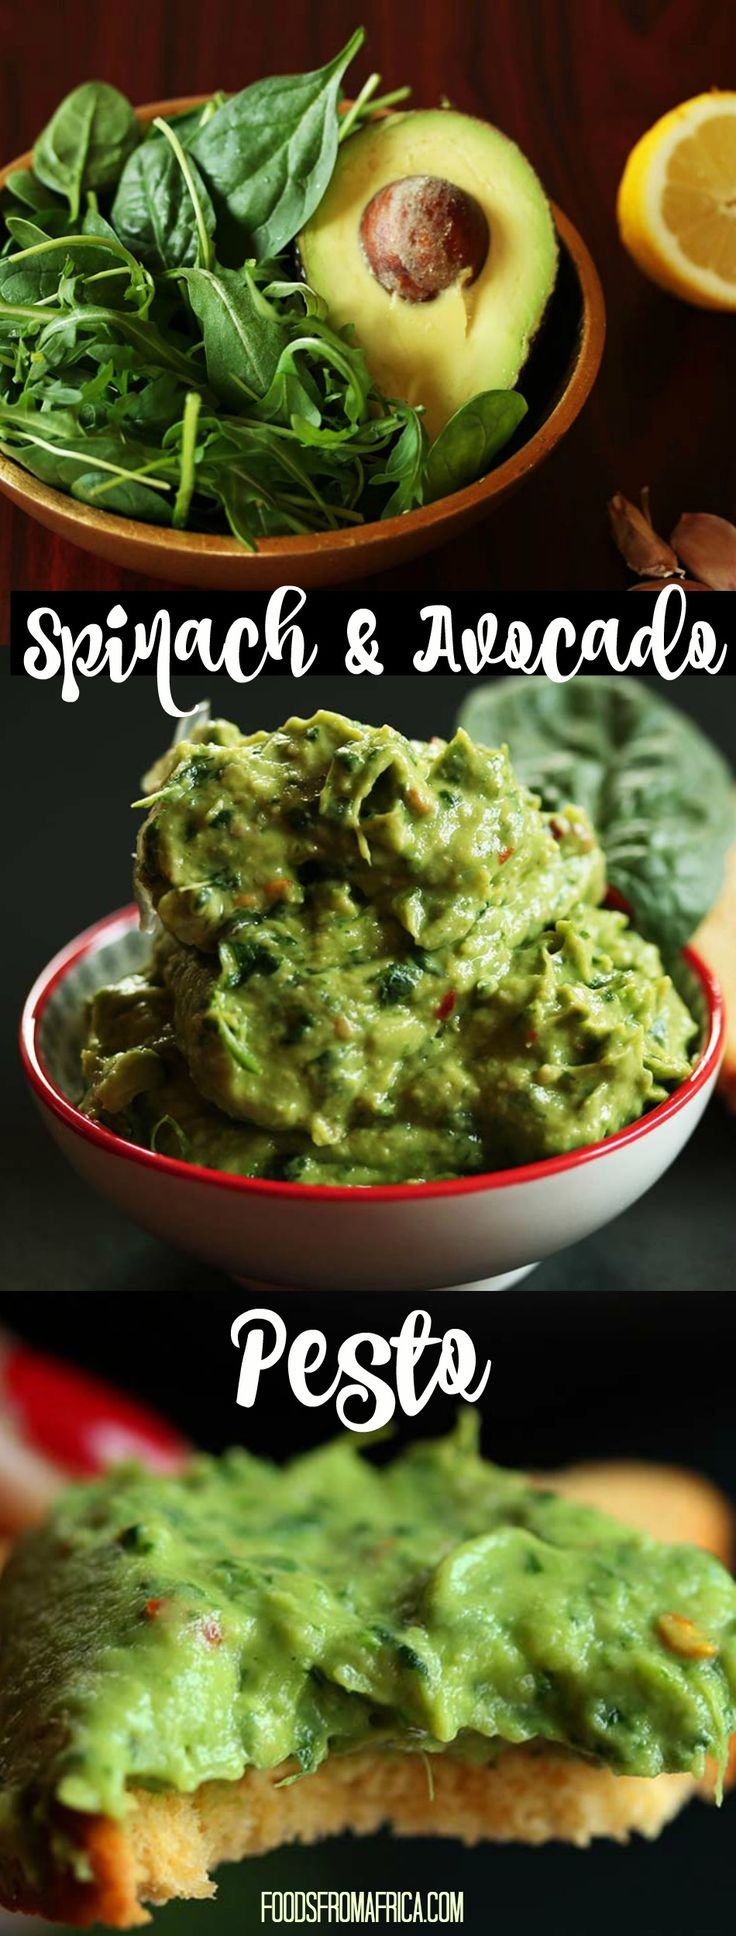 Spinach and Avocado Pesto. Afro-fusion food blog | African recipes | African food blog.